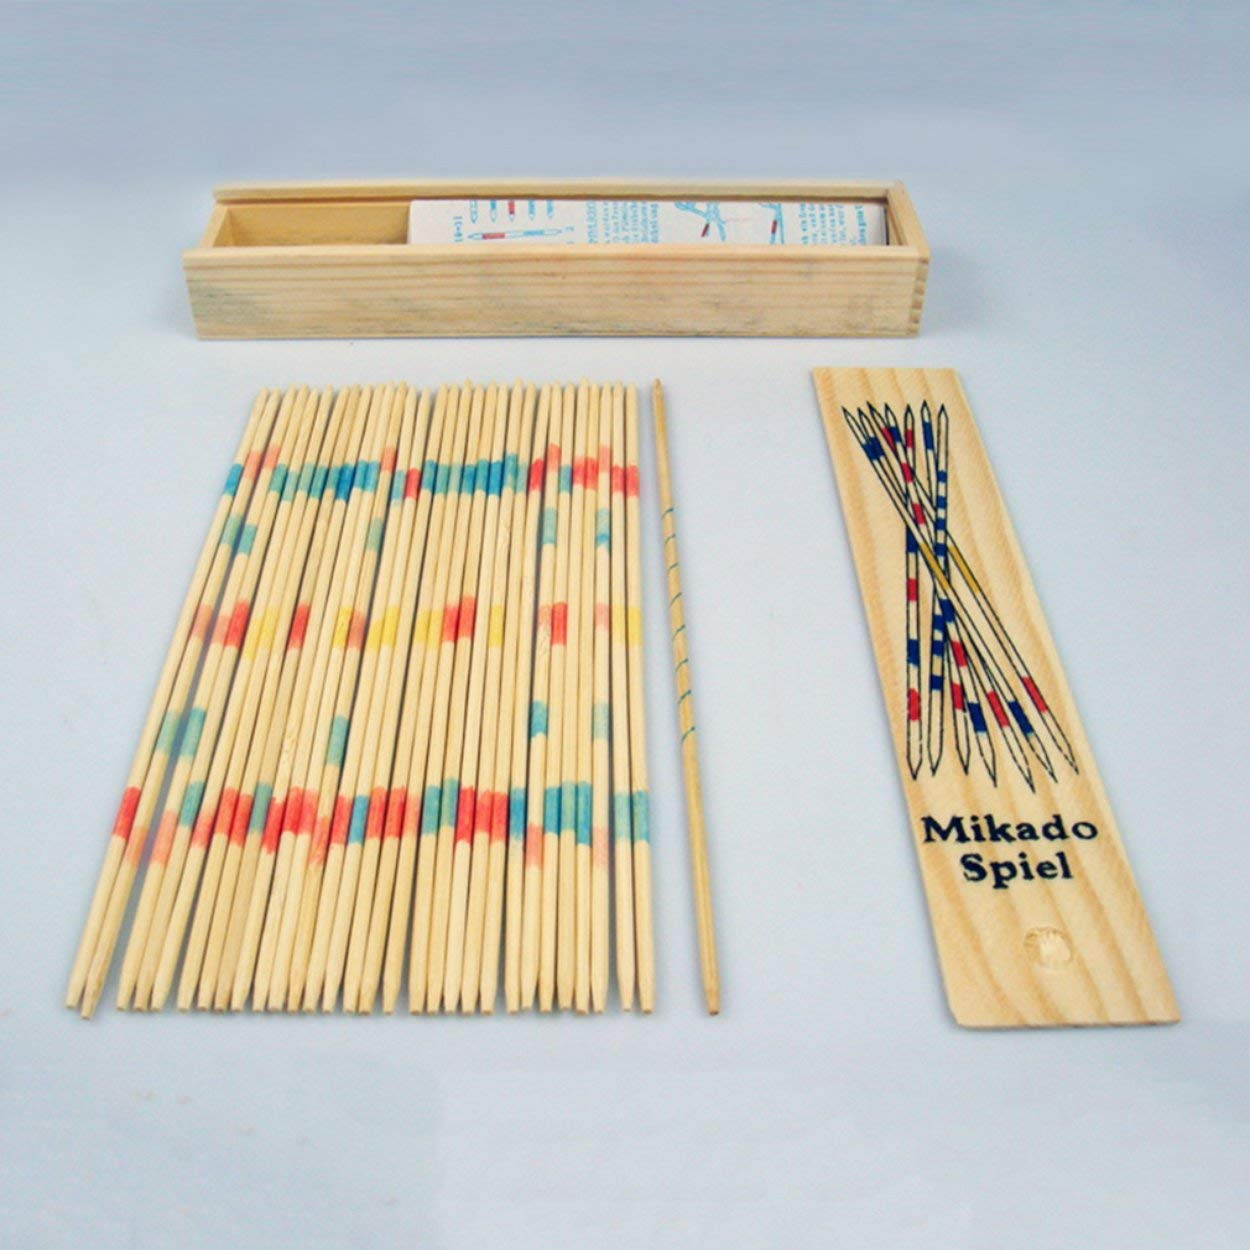 anyilon Baby Educational Wooden Traditional Mikado Spiel Pick Up Sticks Tool with Box Game Developing Math Ability